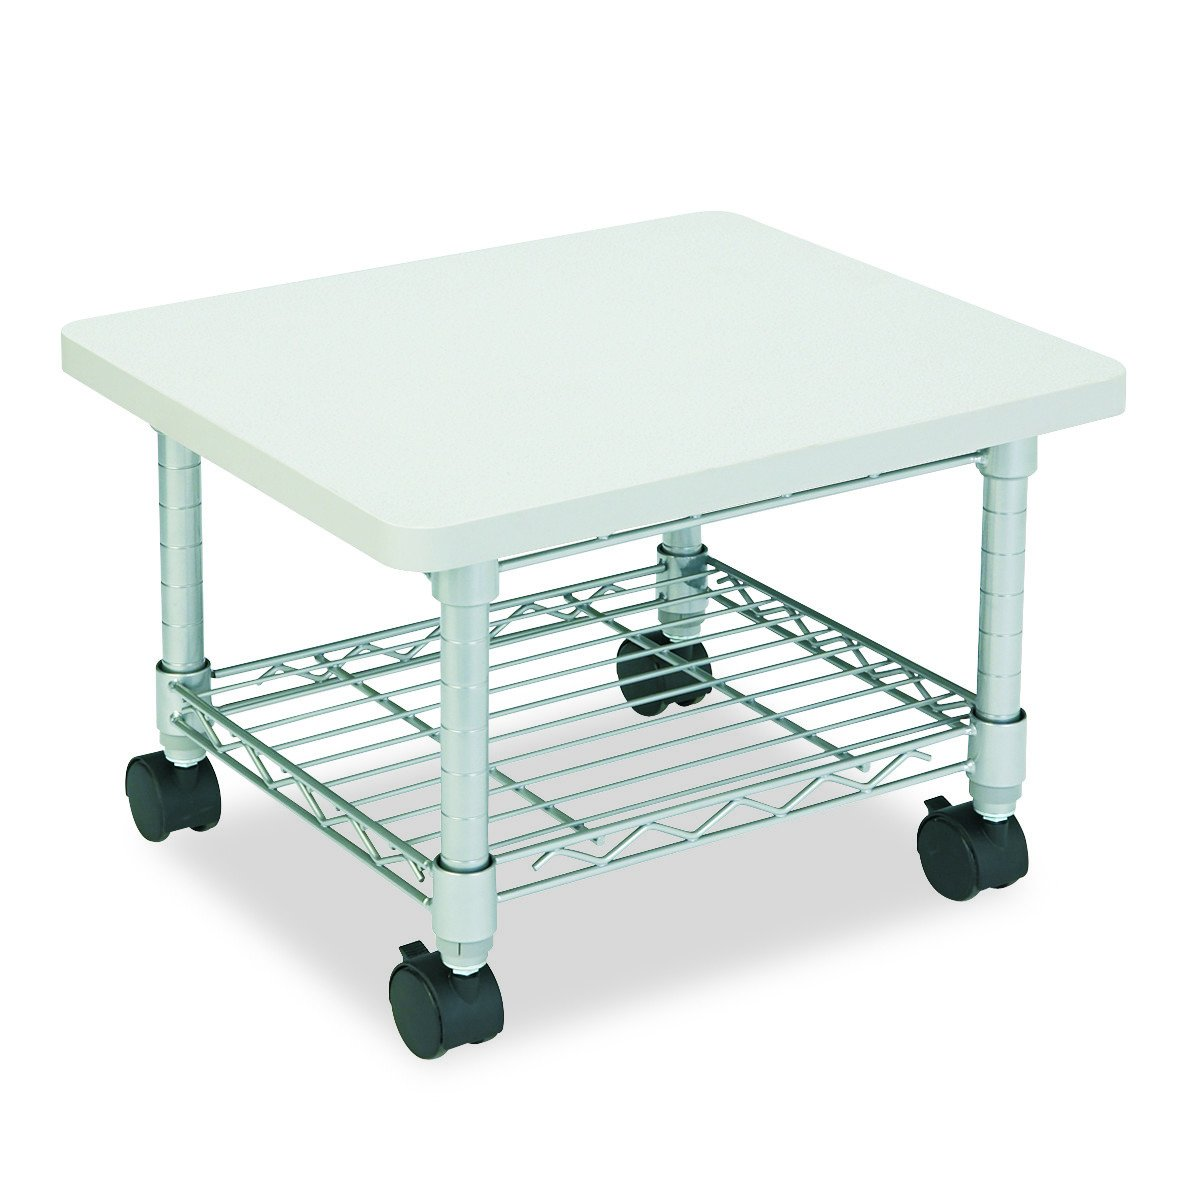 Safco Products Under Desk Printer/Fax Stand , Gray Powder Coat Finish, Swivel Wheels for Mobility by Safco